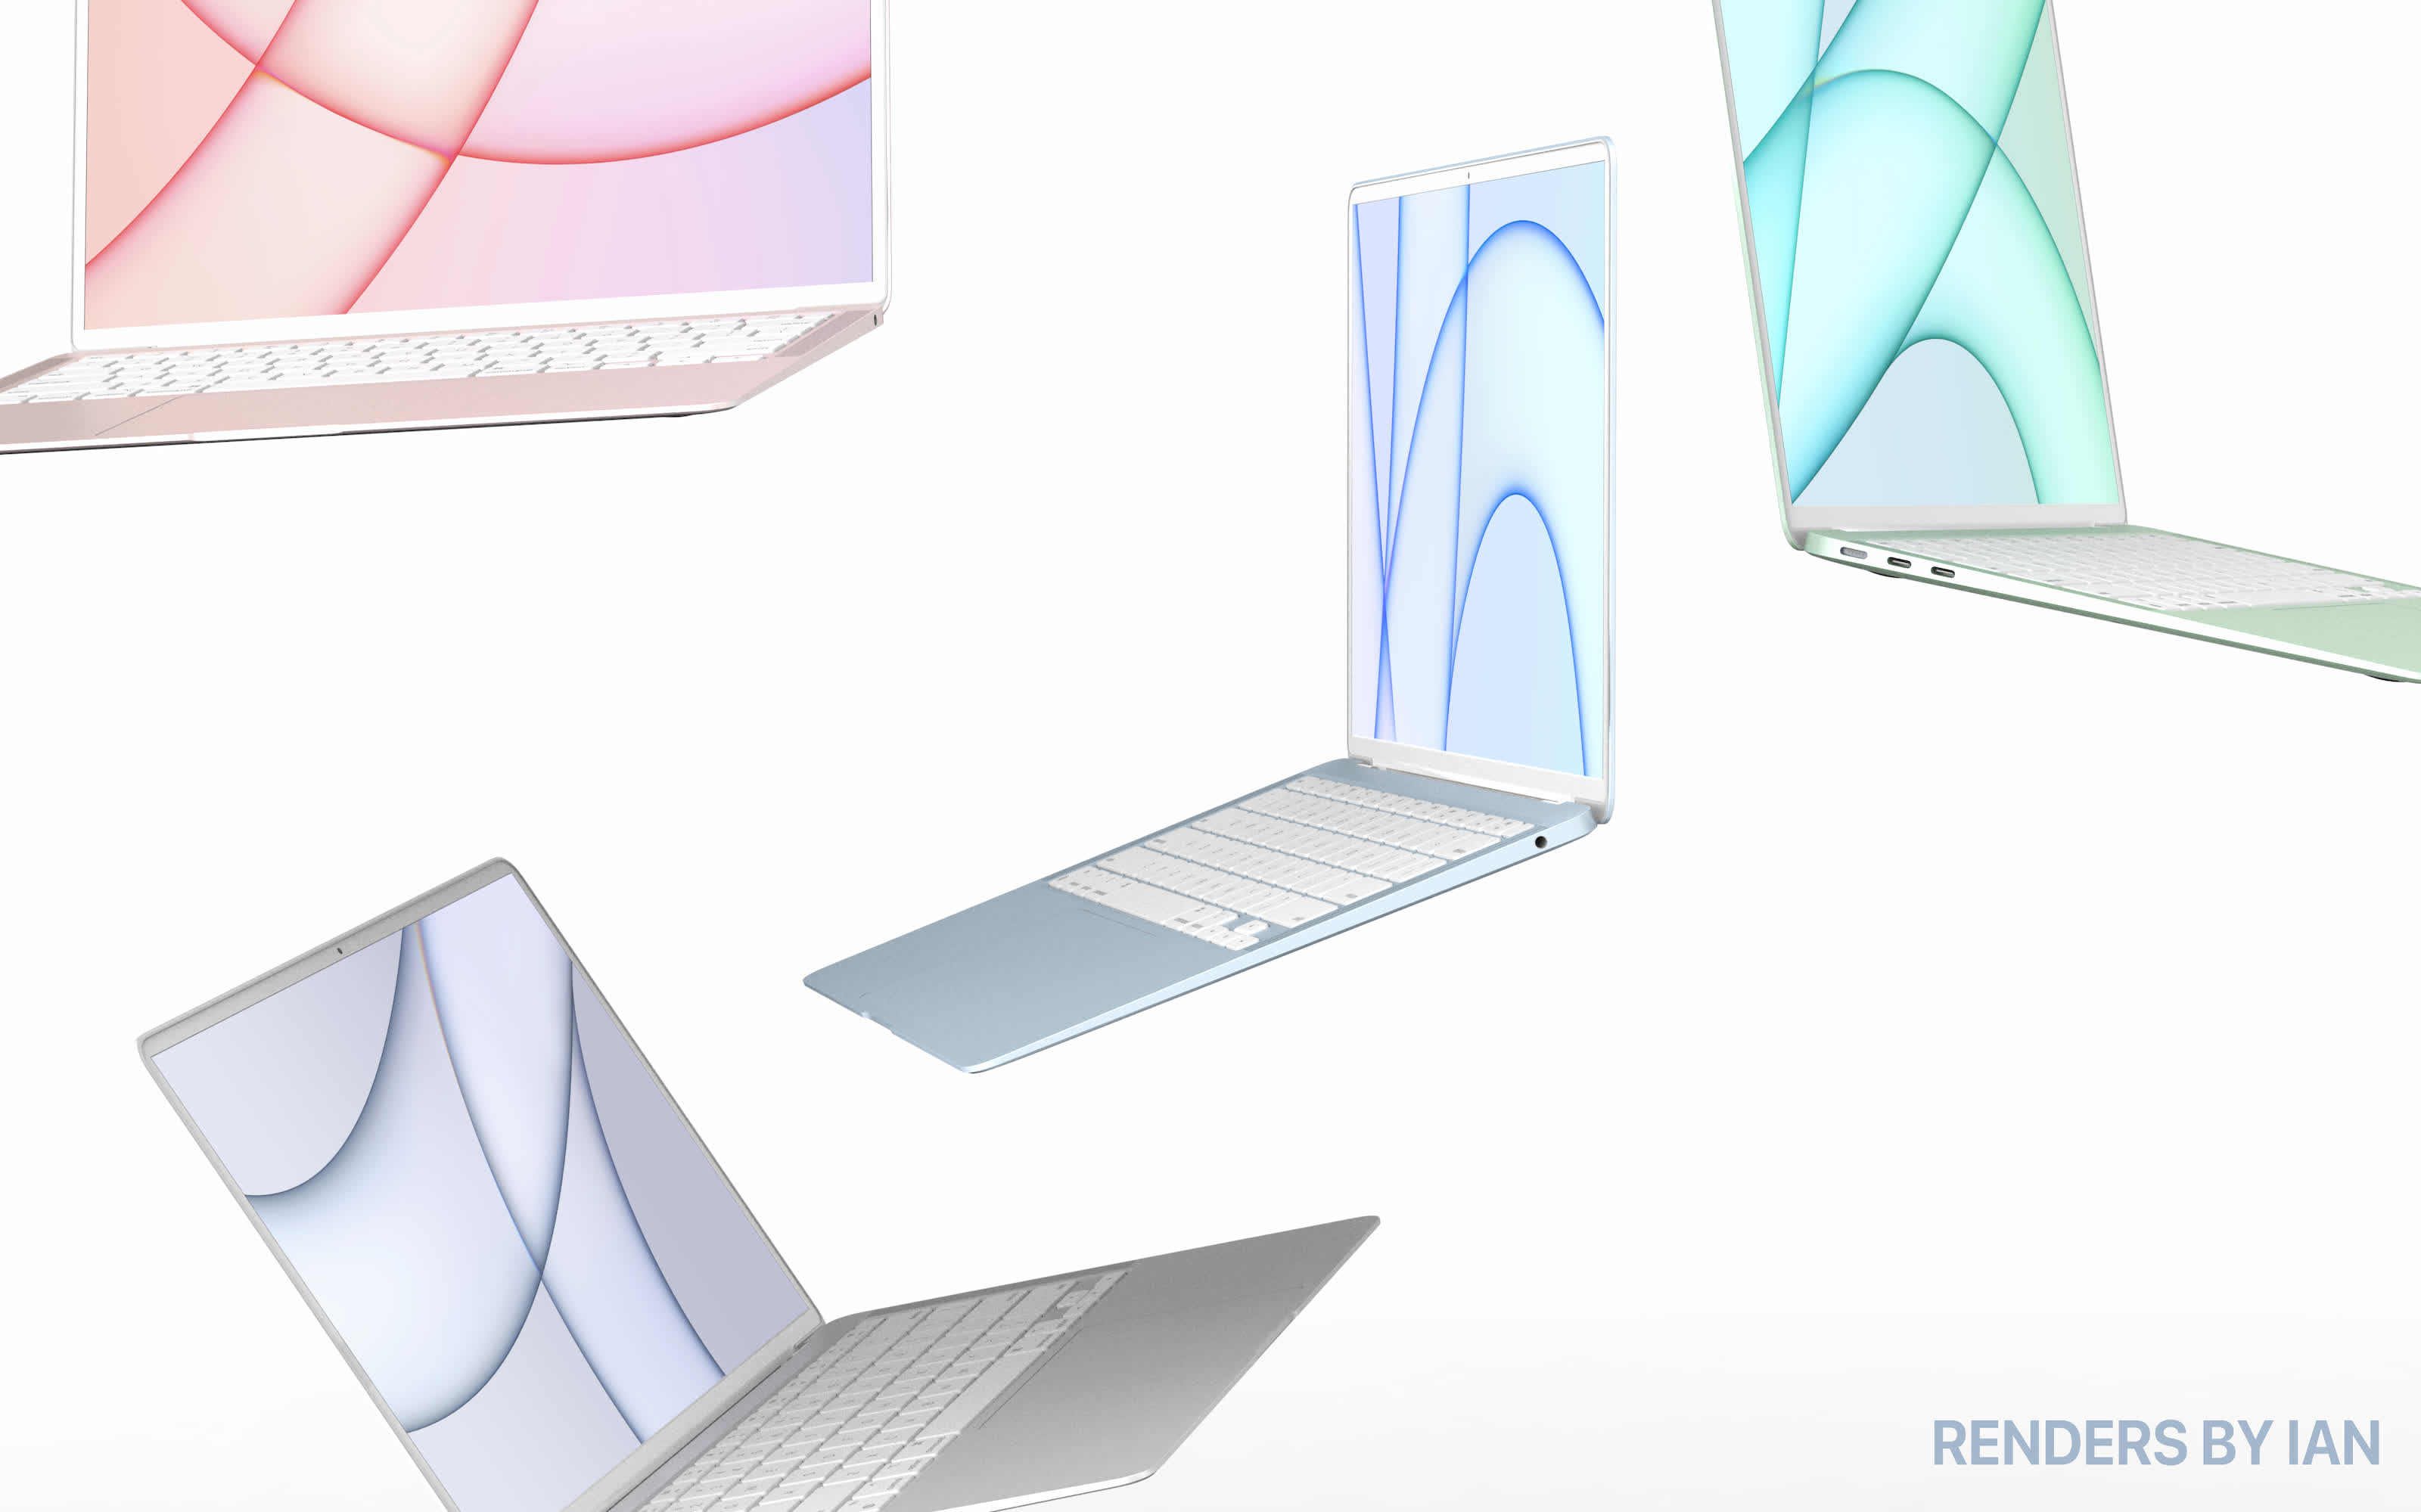 Rumored MacBook Air redesign revealed in leaked images